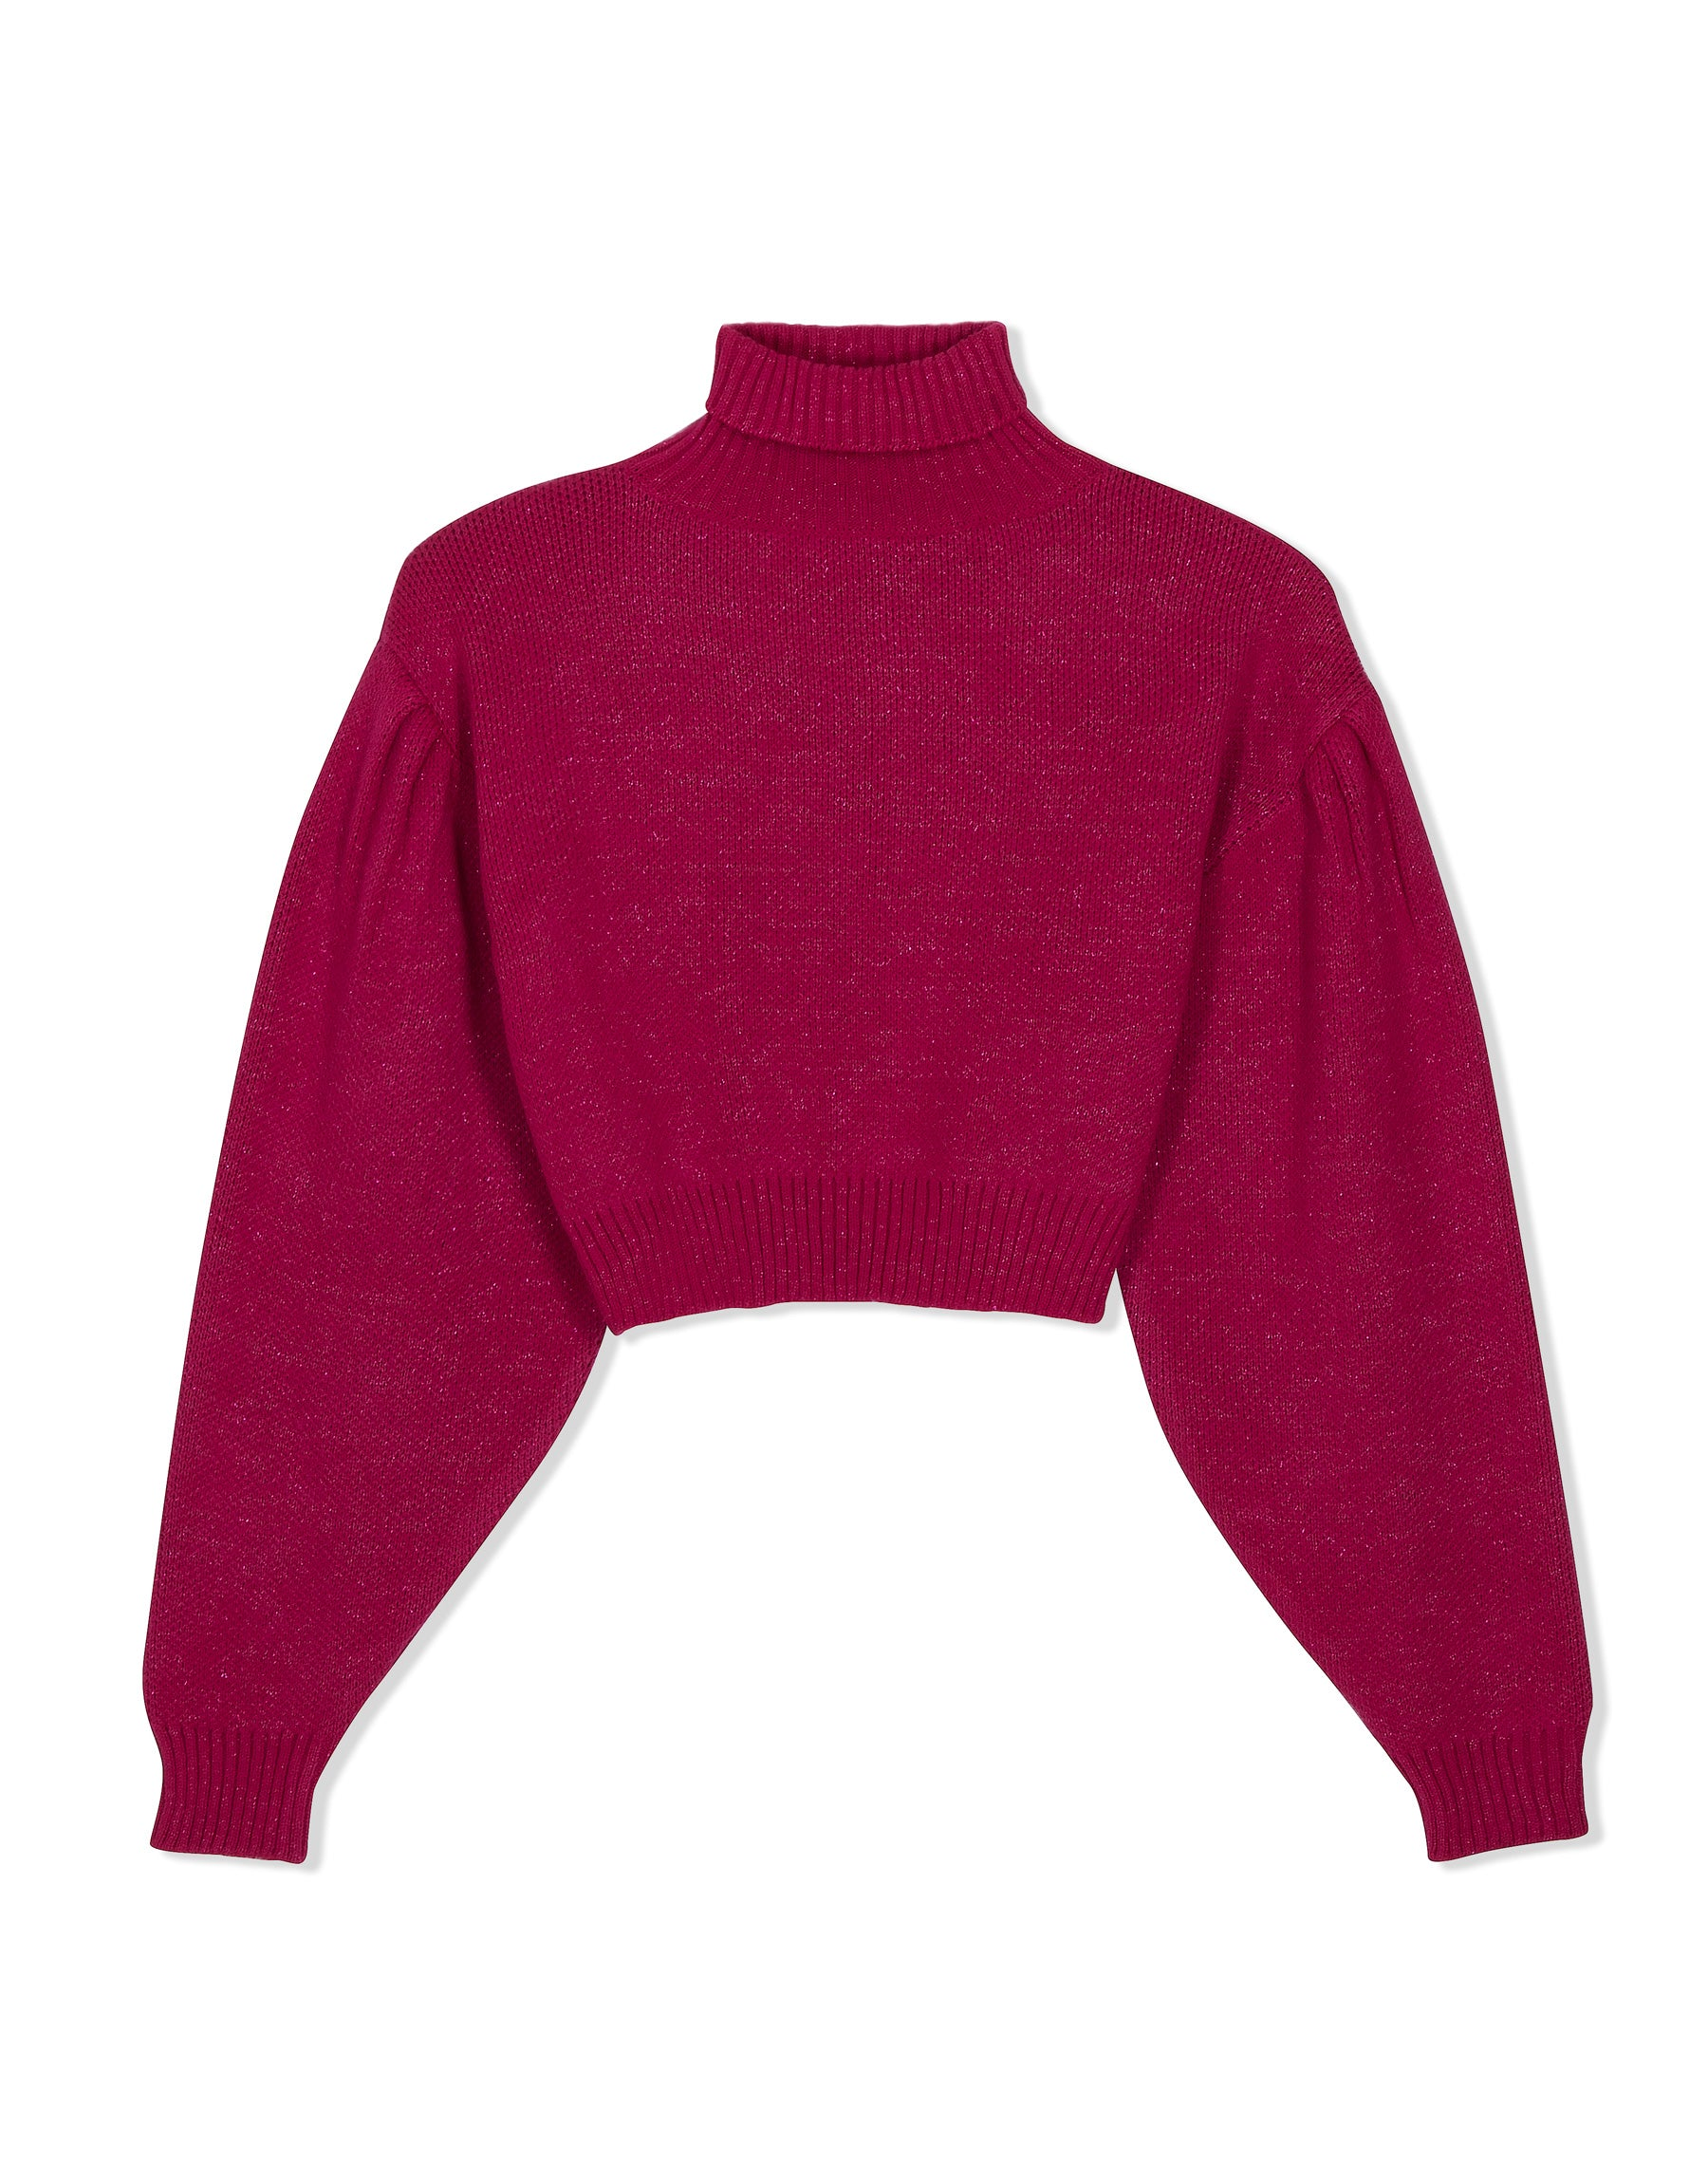 Knitwear from KVDWKND, Poloneck Cropped Jersey in Sparkle Pink. New by Kat van Duinen.